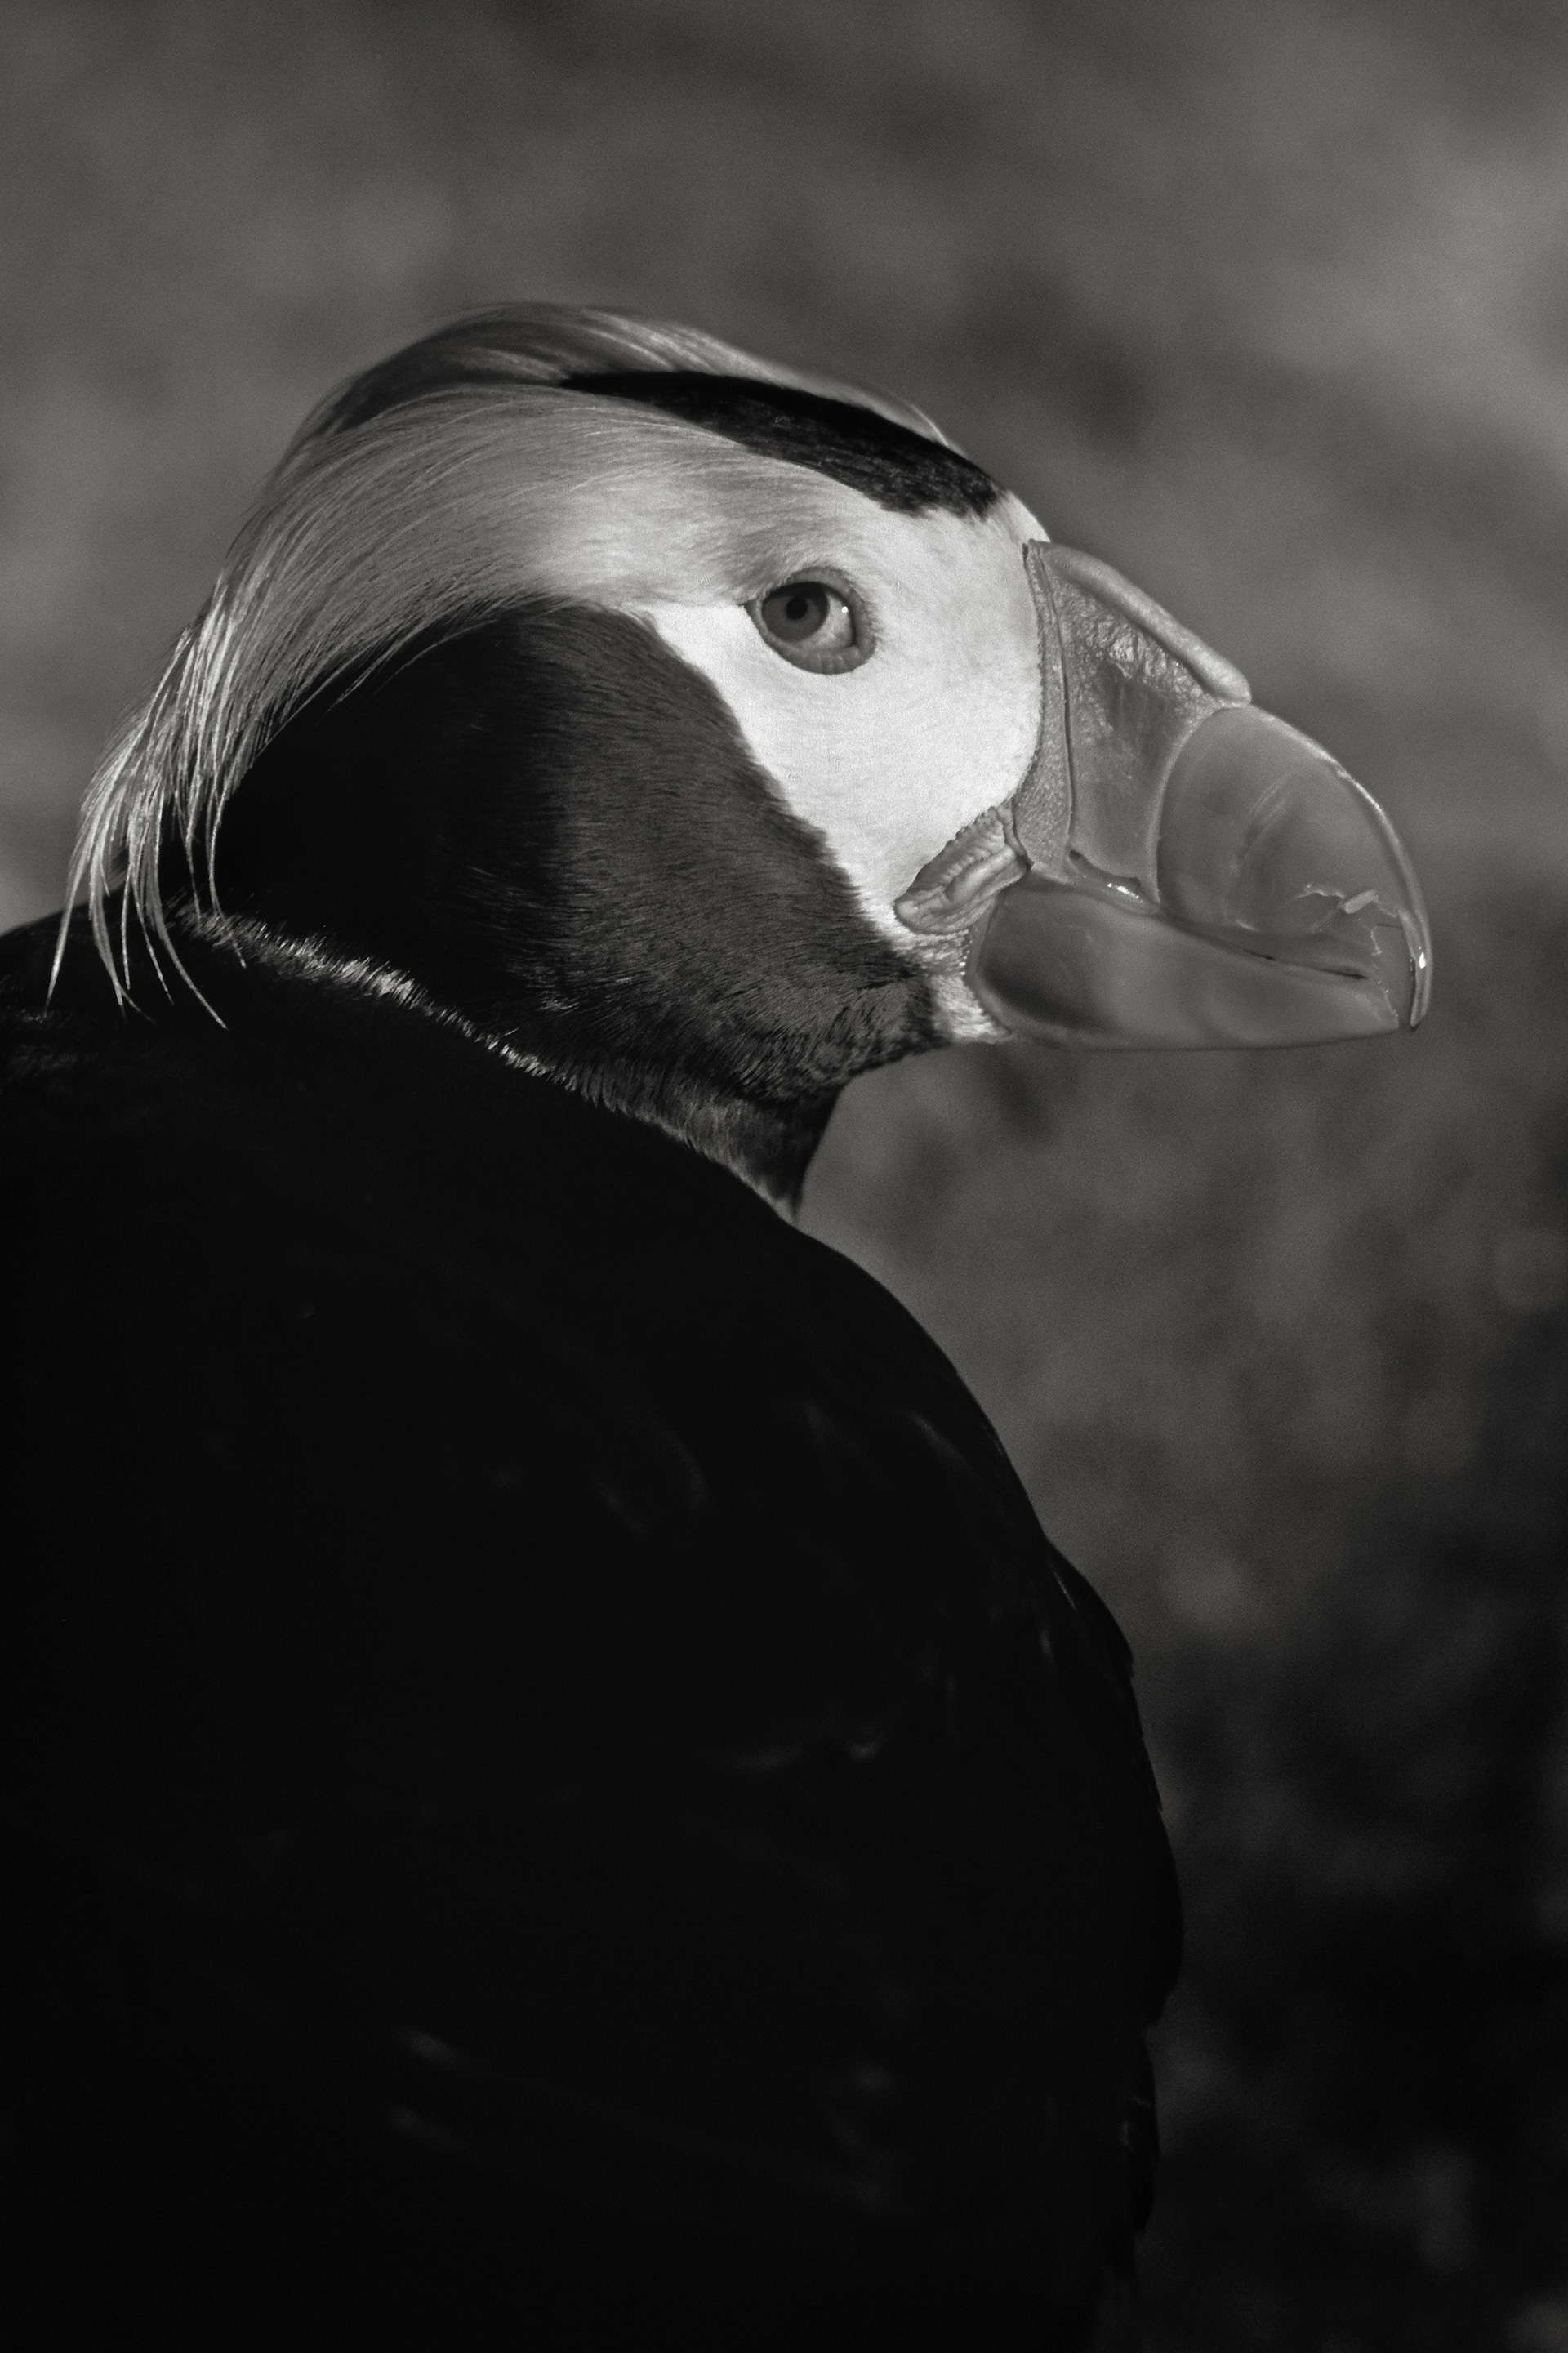 Gilles Martin's photograph : tufted puffin from Alaska, Struggle for life